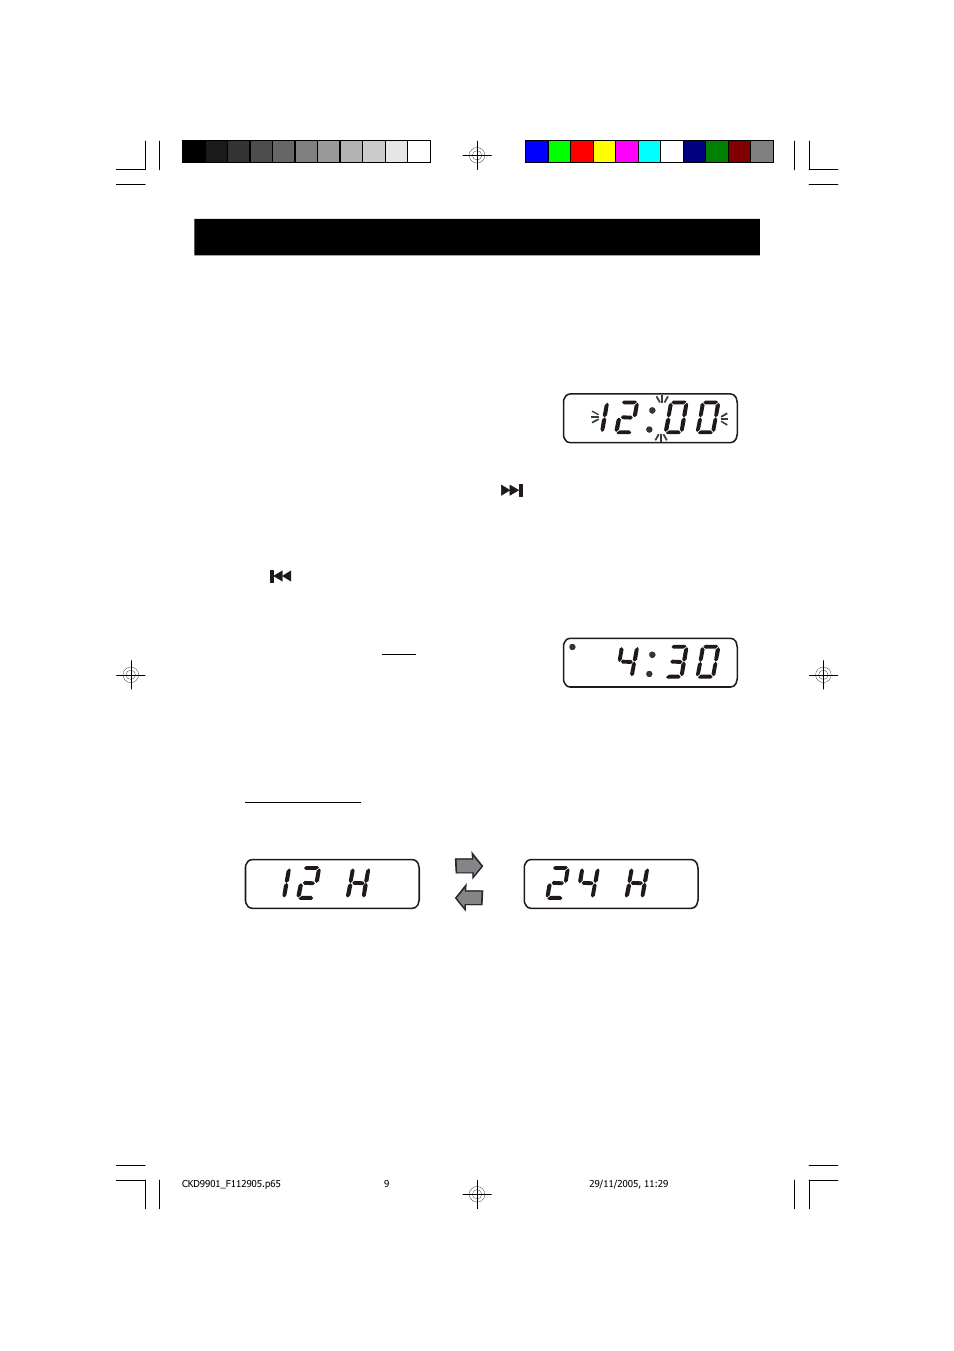 operating instructions setting the time of day emerson radio rh manualsdir com